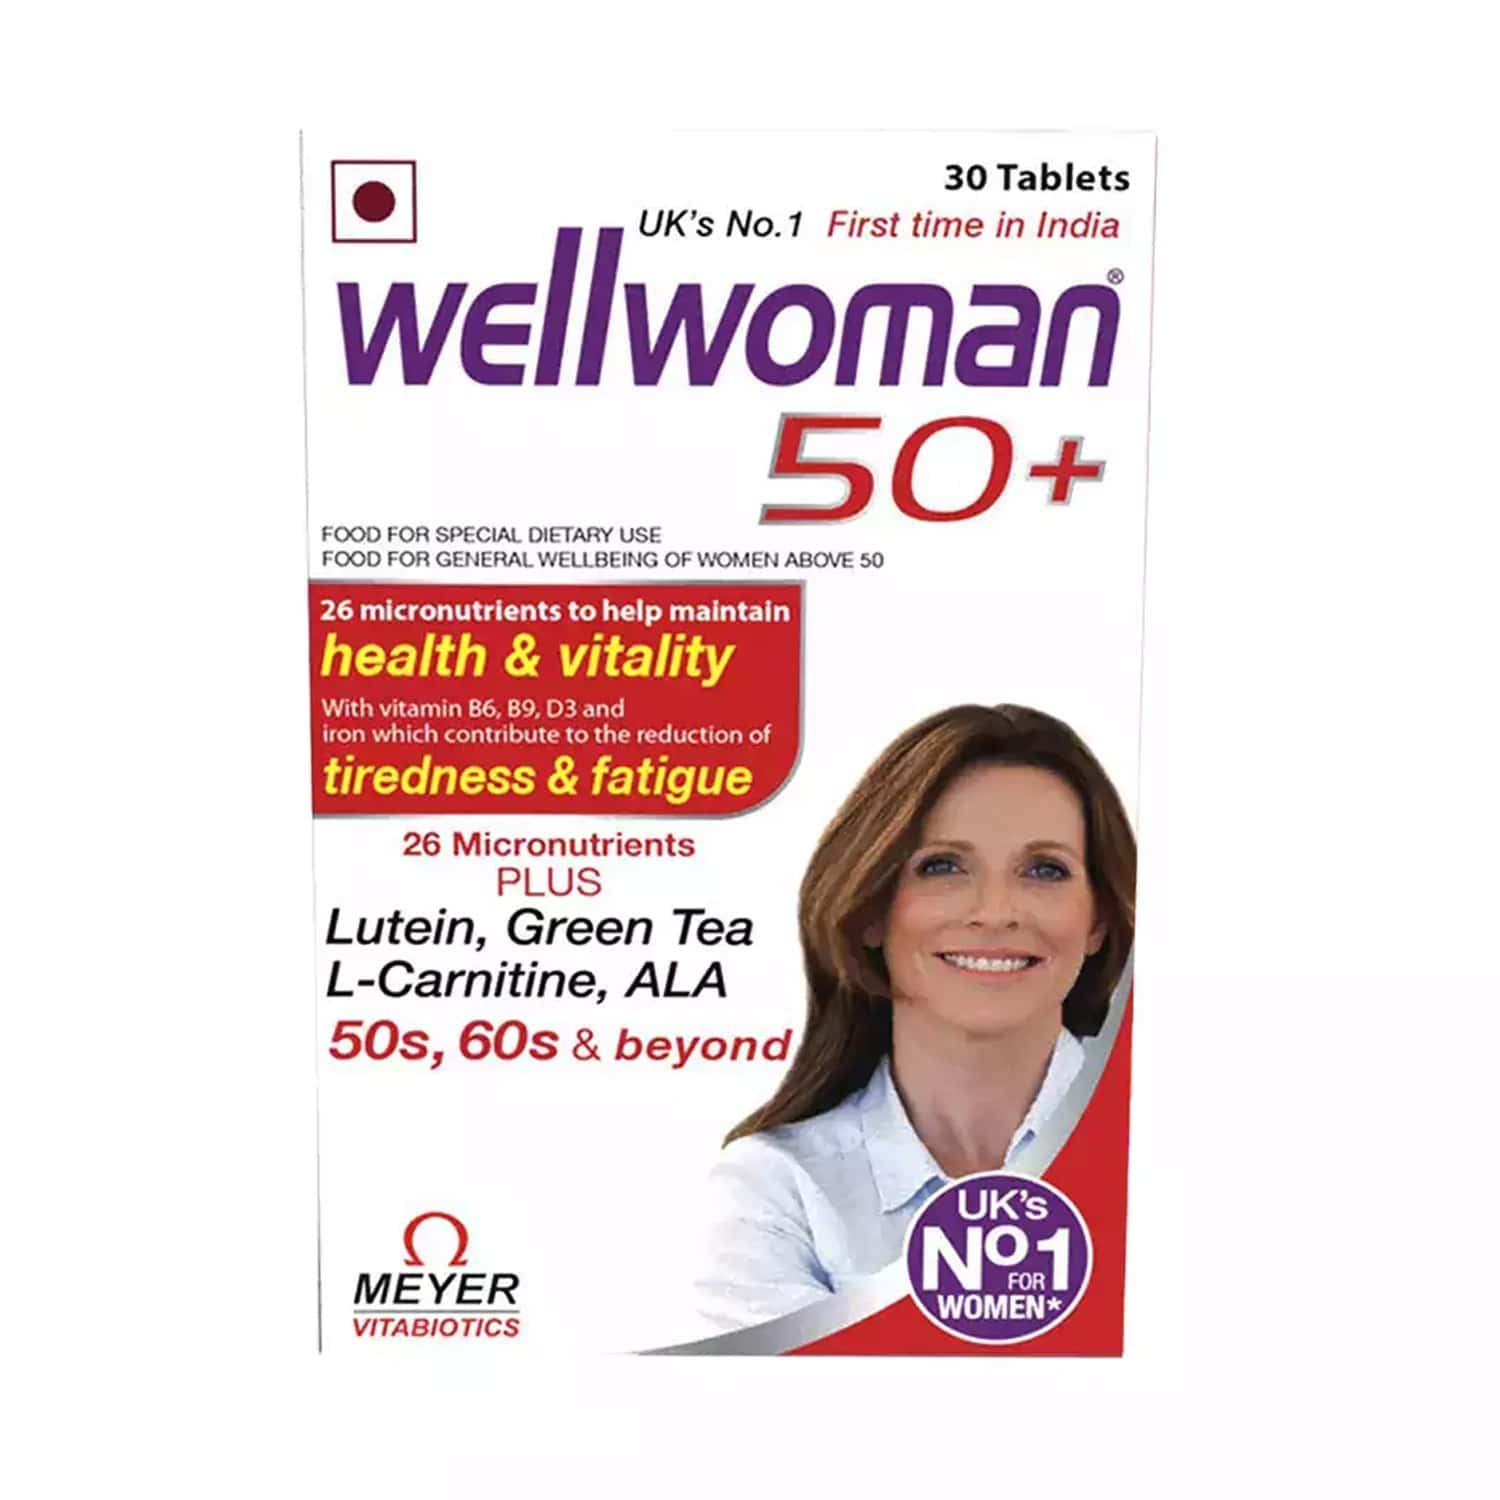 Wellwoman 50+ - Health Supplements (26 Vitamins And Minerals) With Wellman 30 Tablet Free